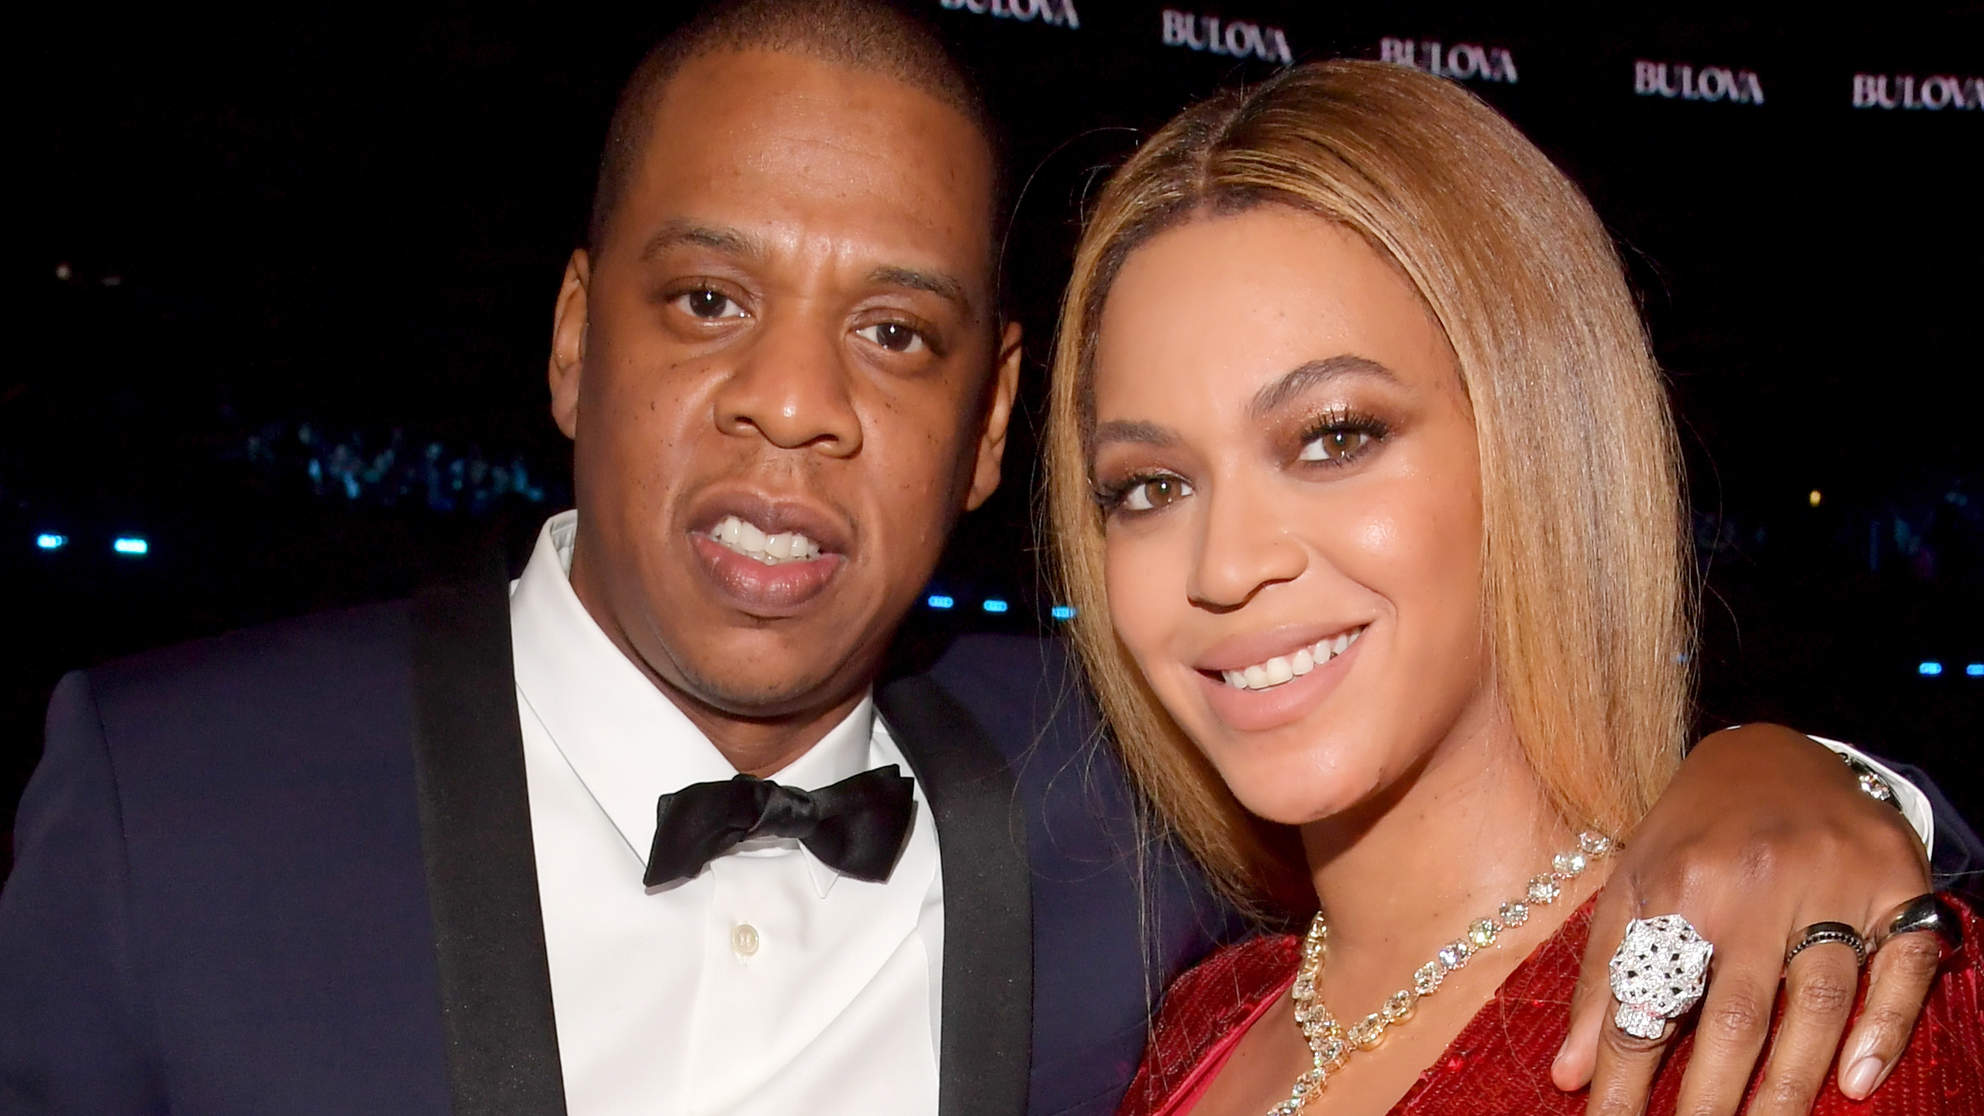 Beyonce-sir-john-body-mask-oscars